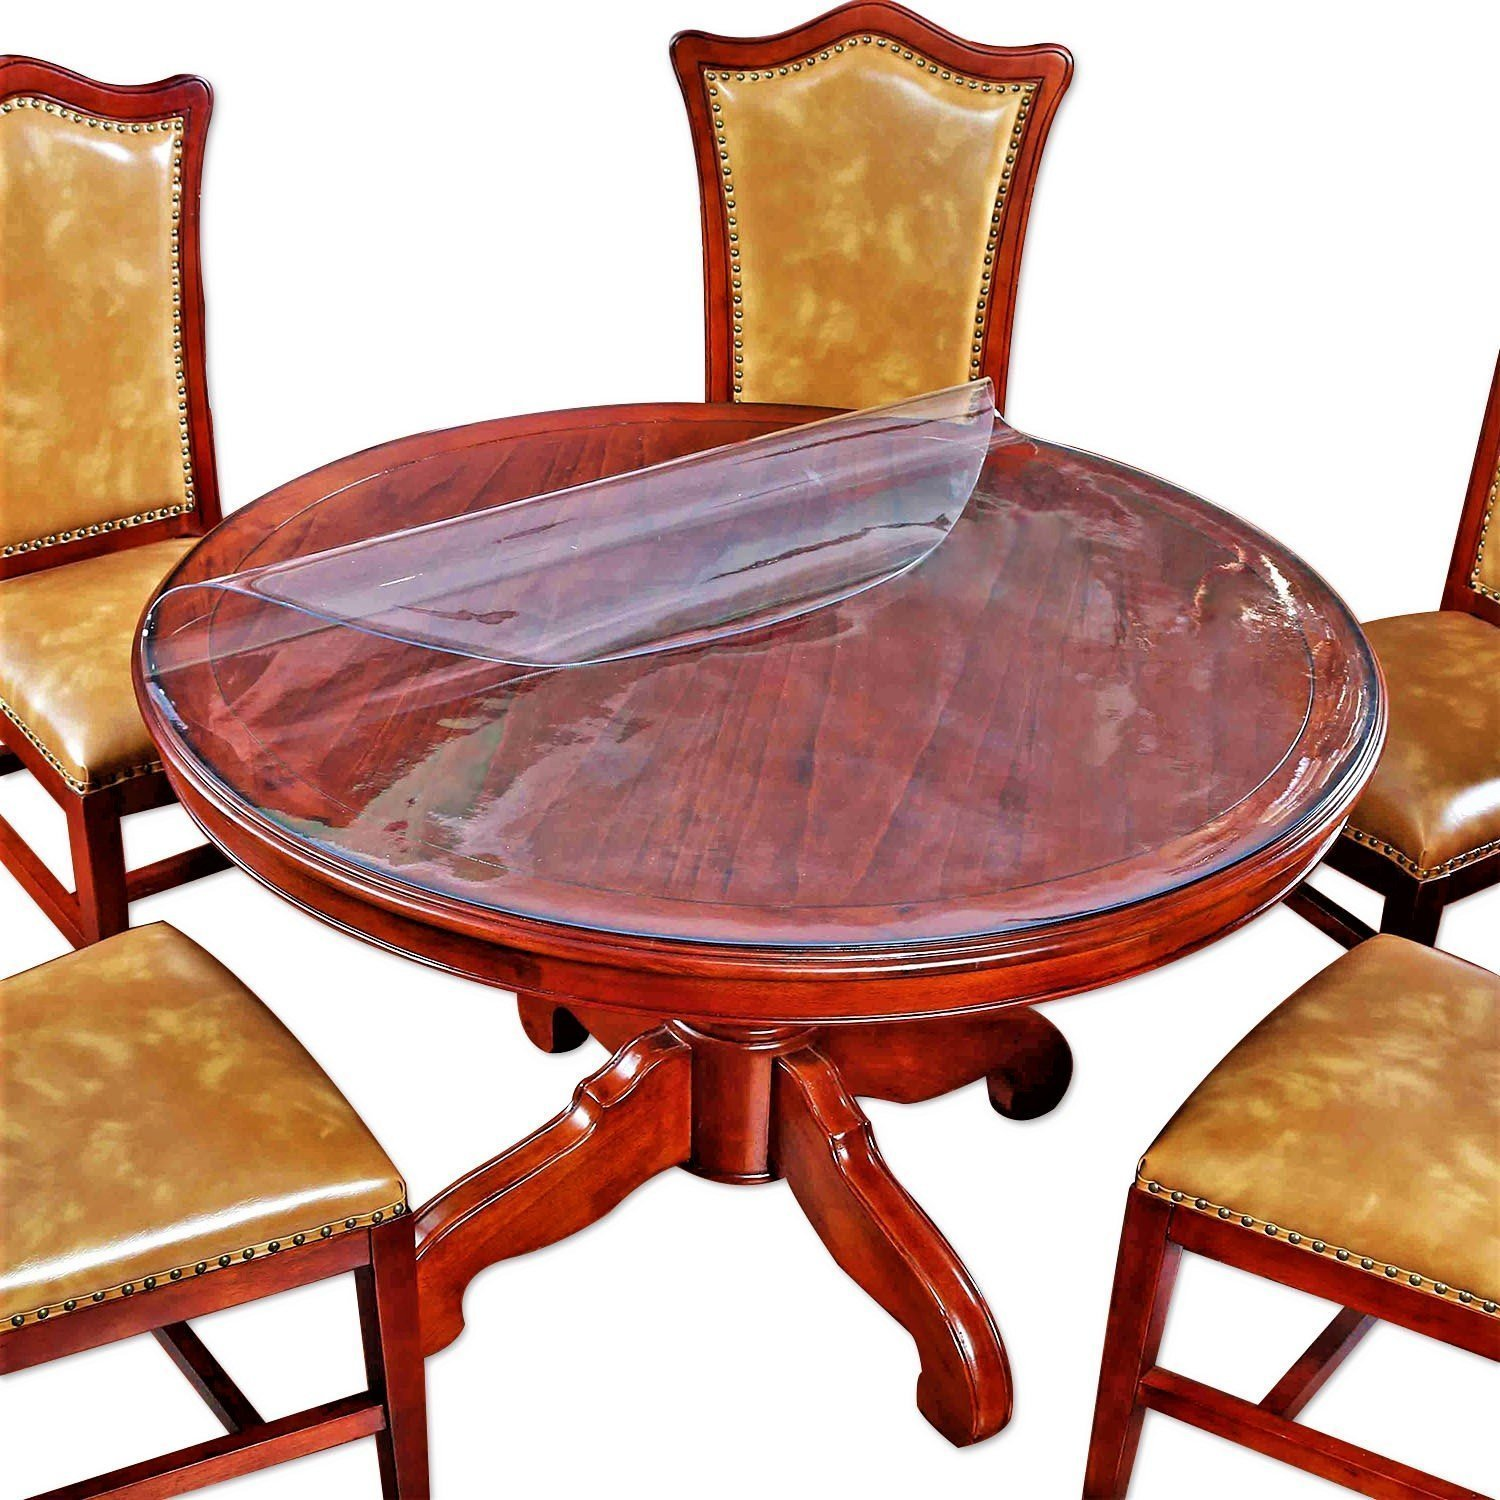 round table cover bedside sofa side dining coffee accent tablecloth end tabletop cloth protector clear plastic vinyl pvc wipeable water resistant mosaic tile bistro and chairs